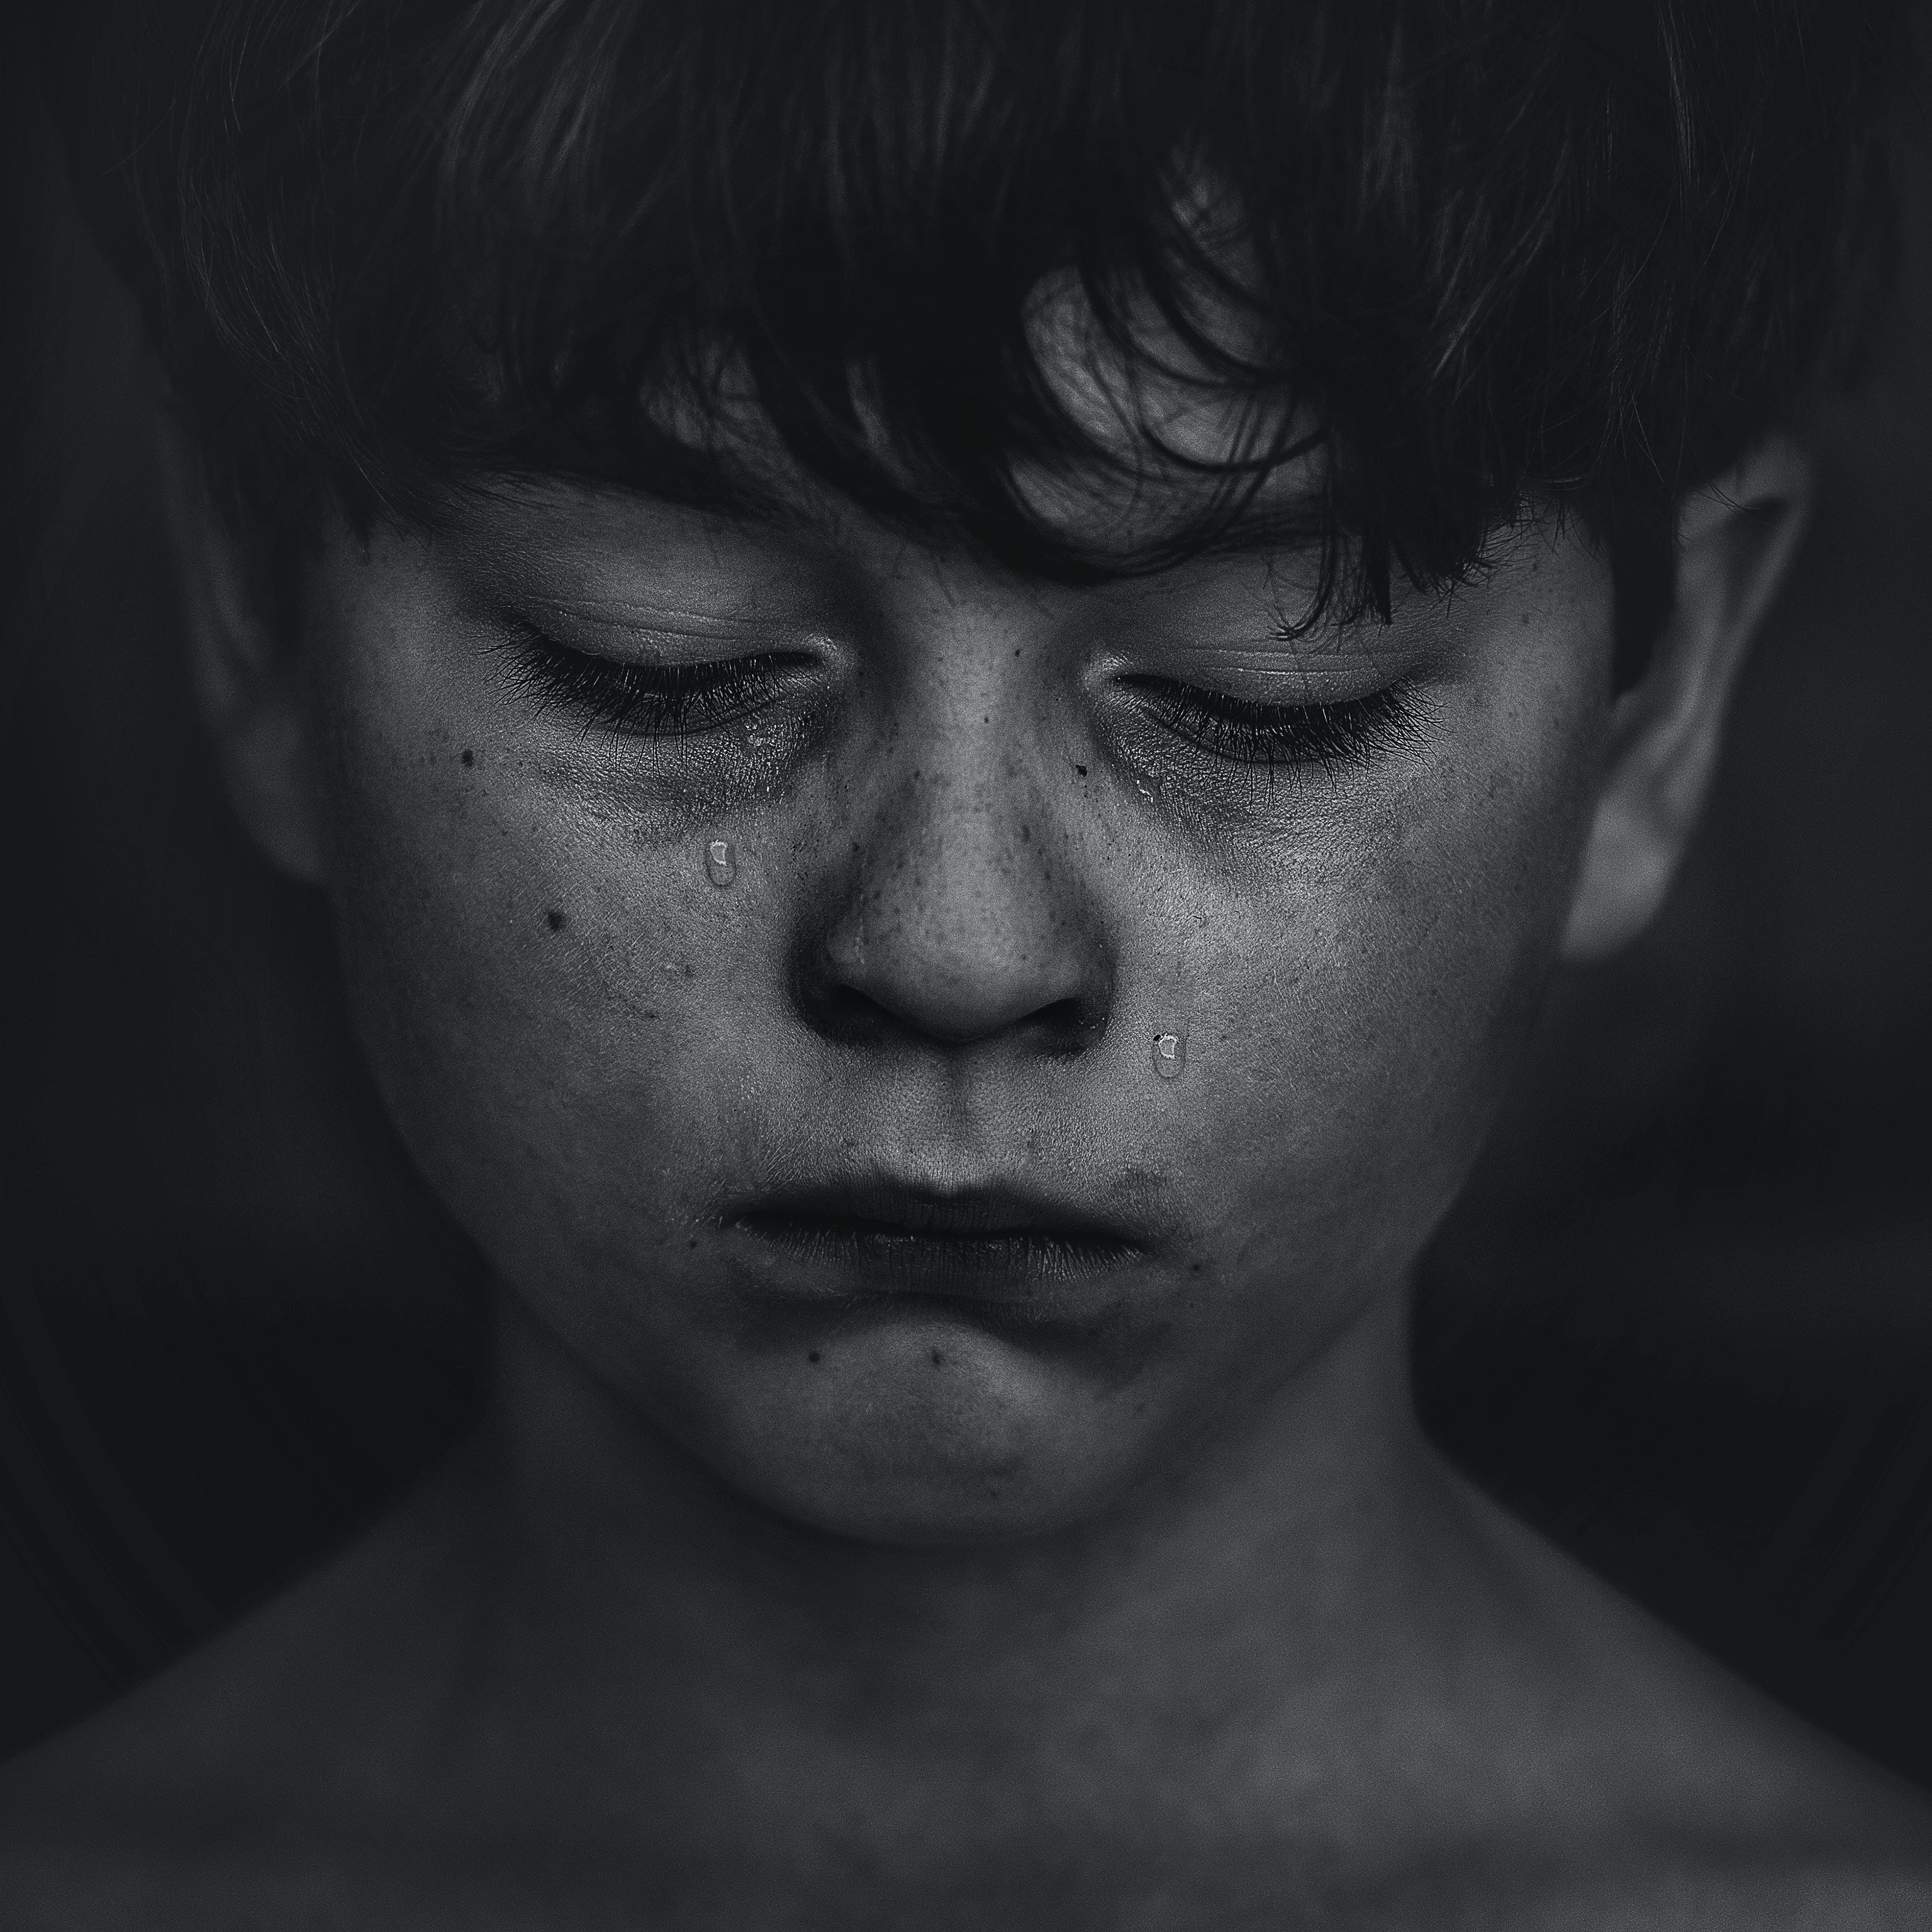 image from Depression in Adolescents